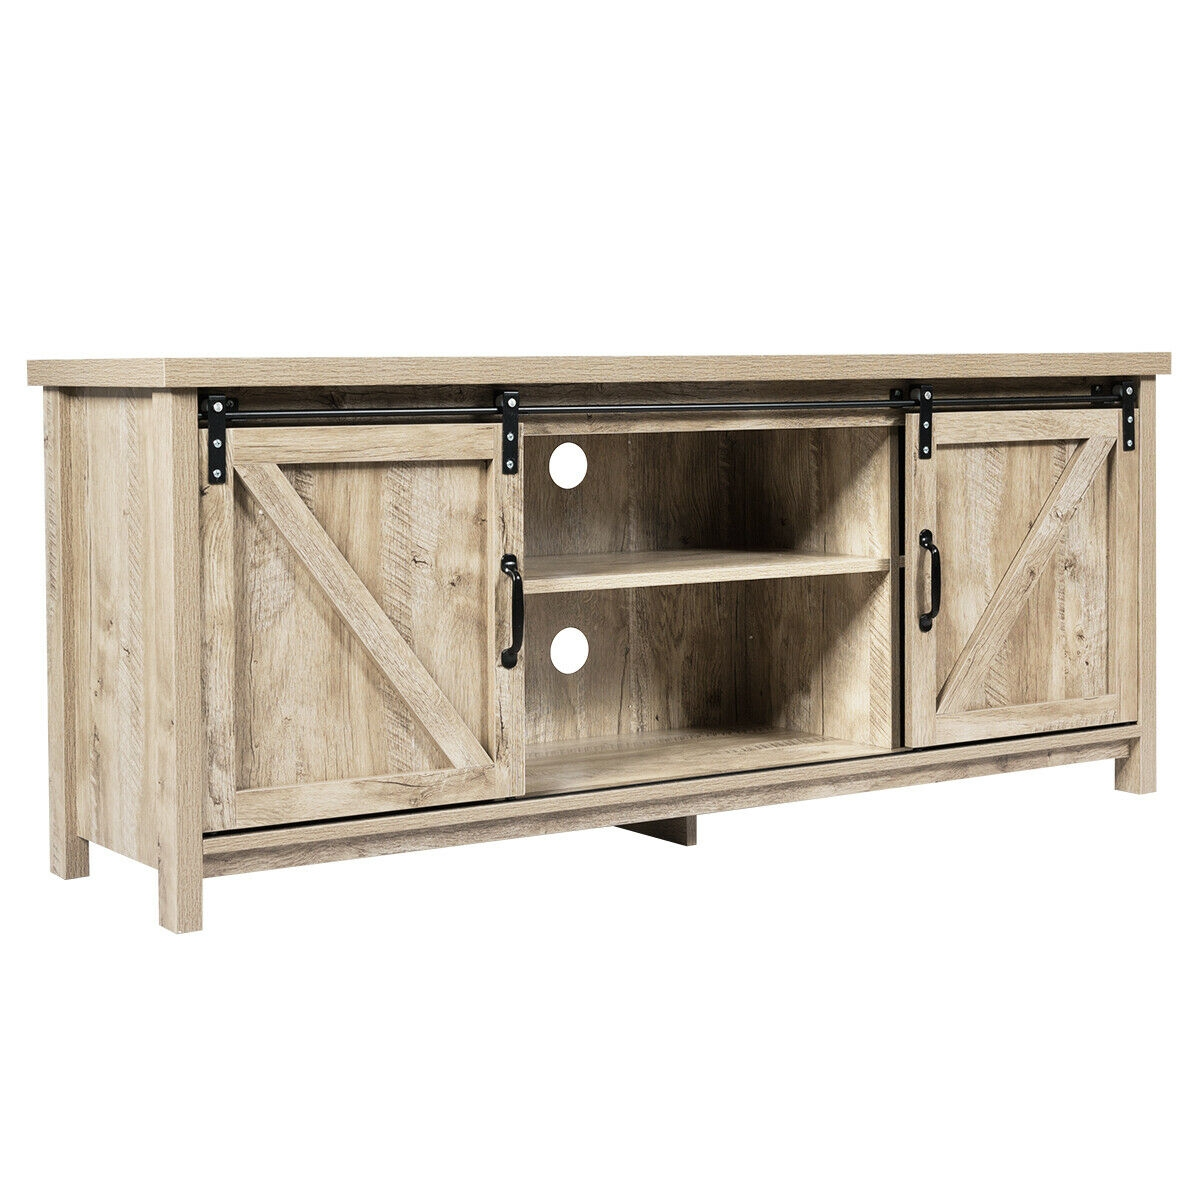 TV Stand with Cabinet Sliding Barn Door -Golden